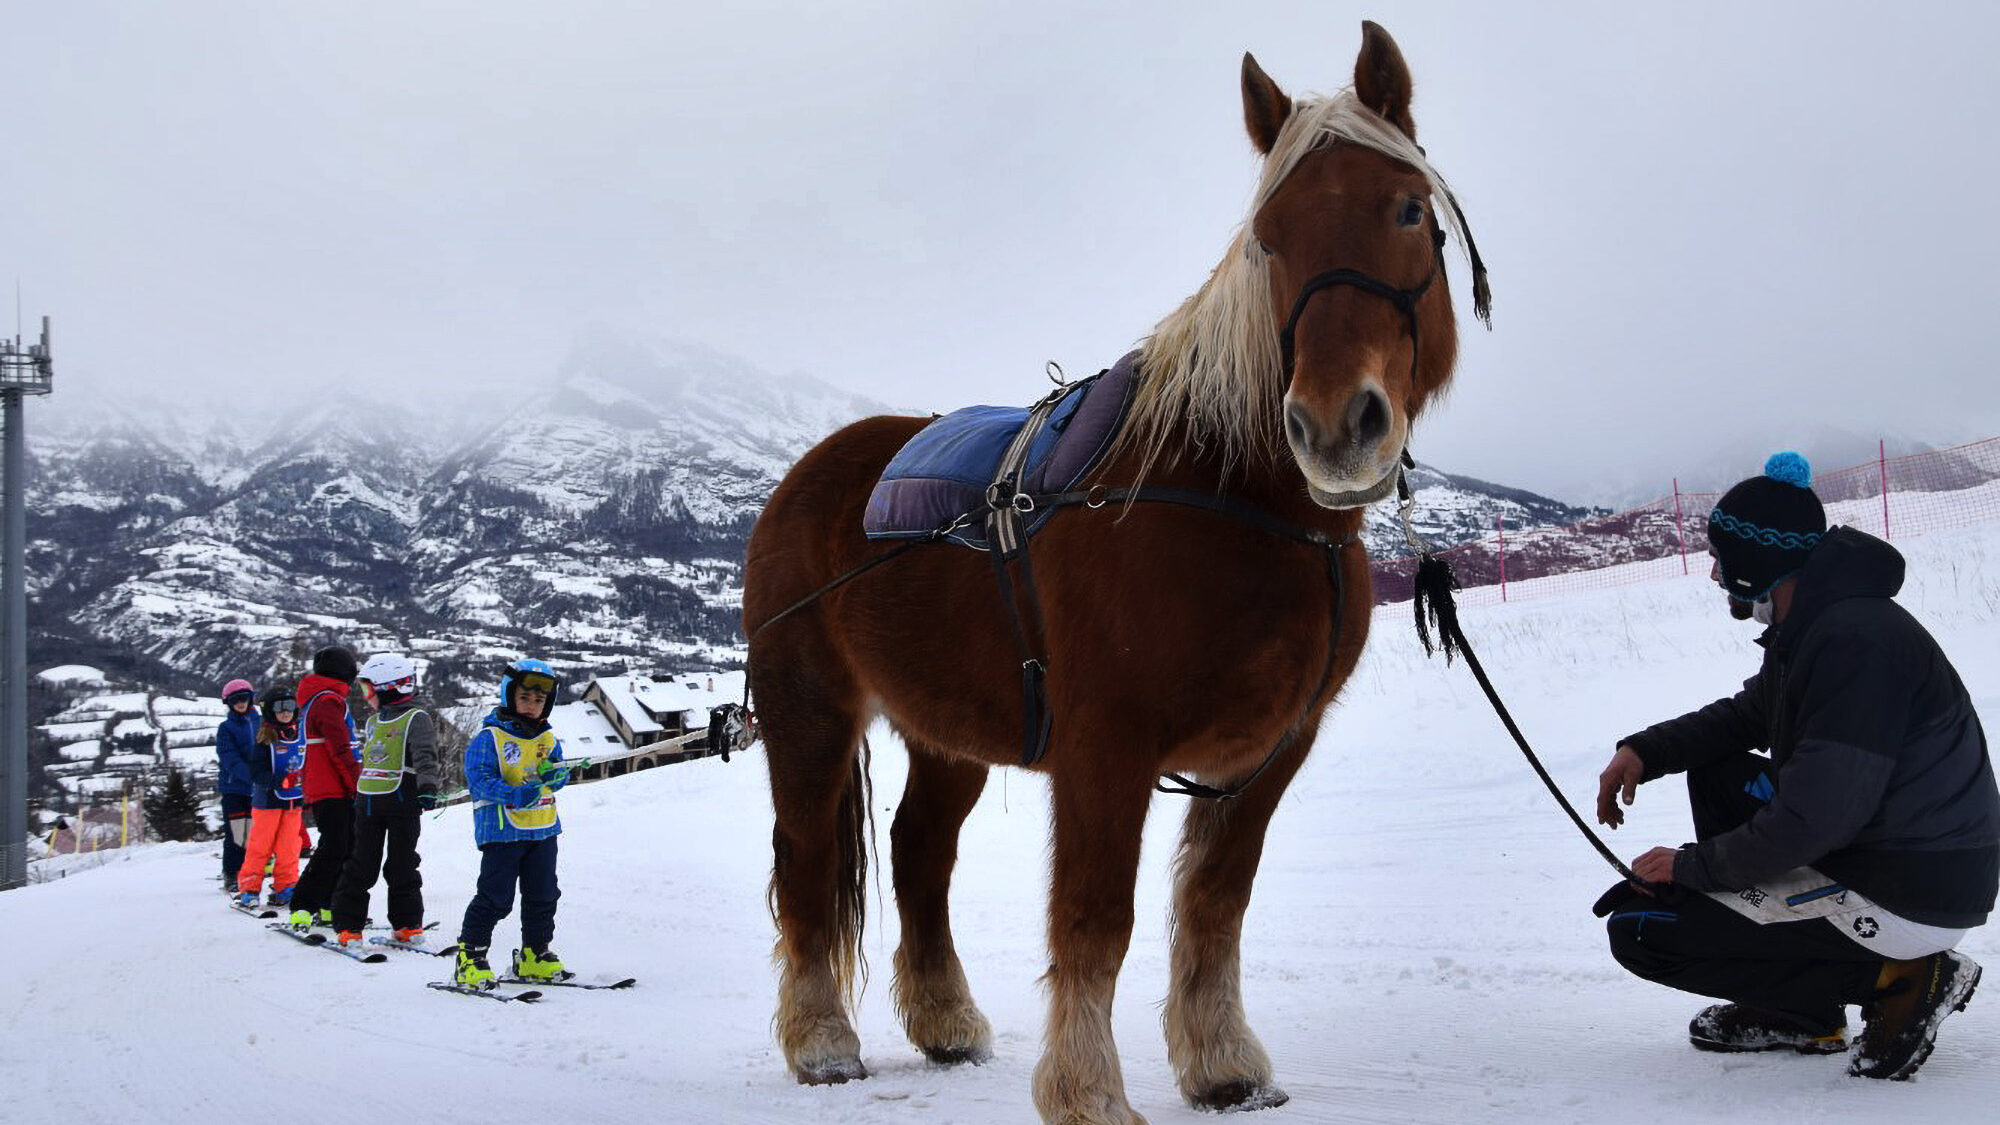 French Ski School Uses Horses to Pull Children Up the Slopes